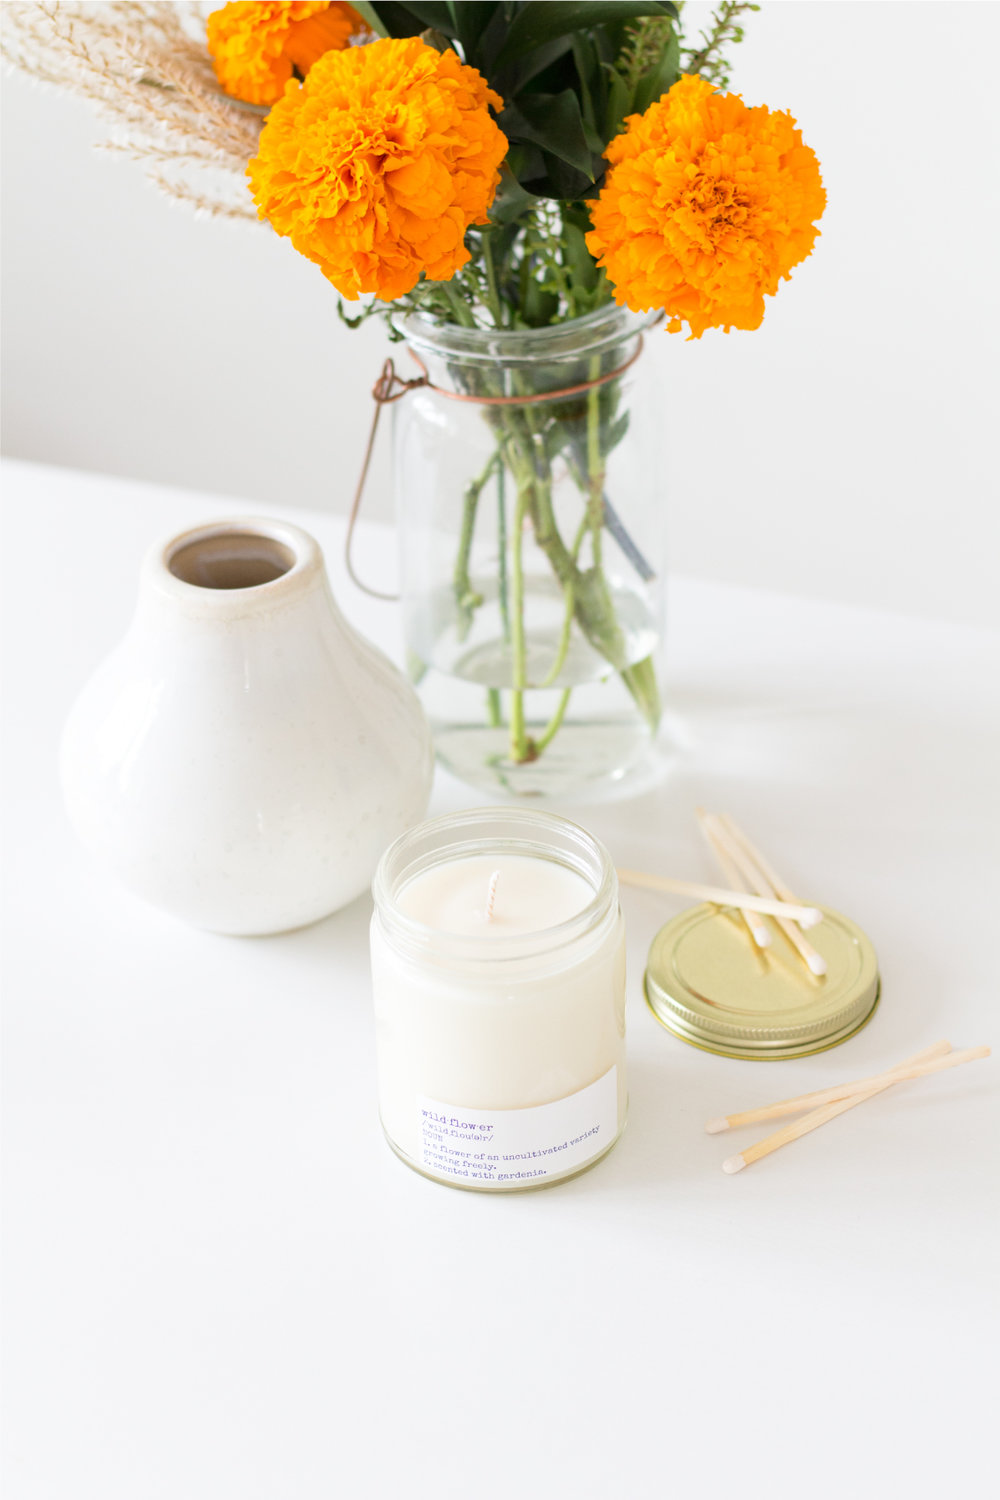 Artisan-Candle-Photography--Artisan-Candles--Branding-Expert.jpg